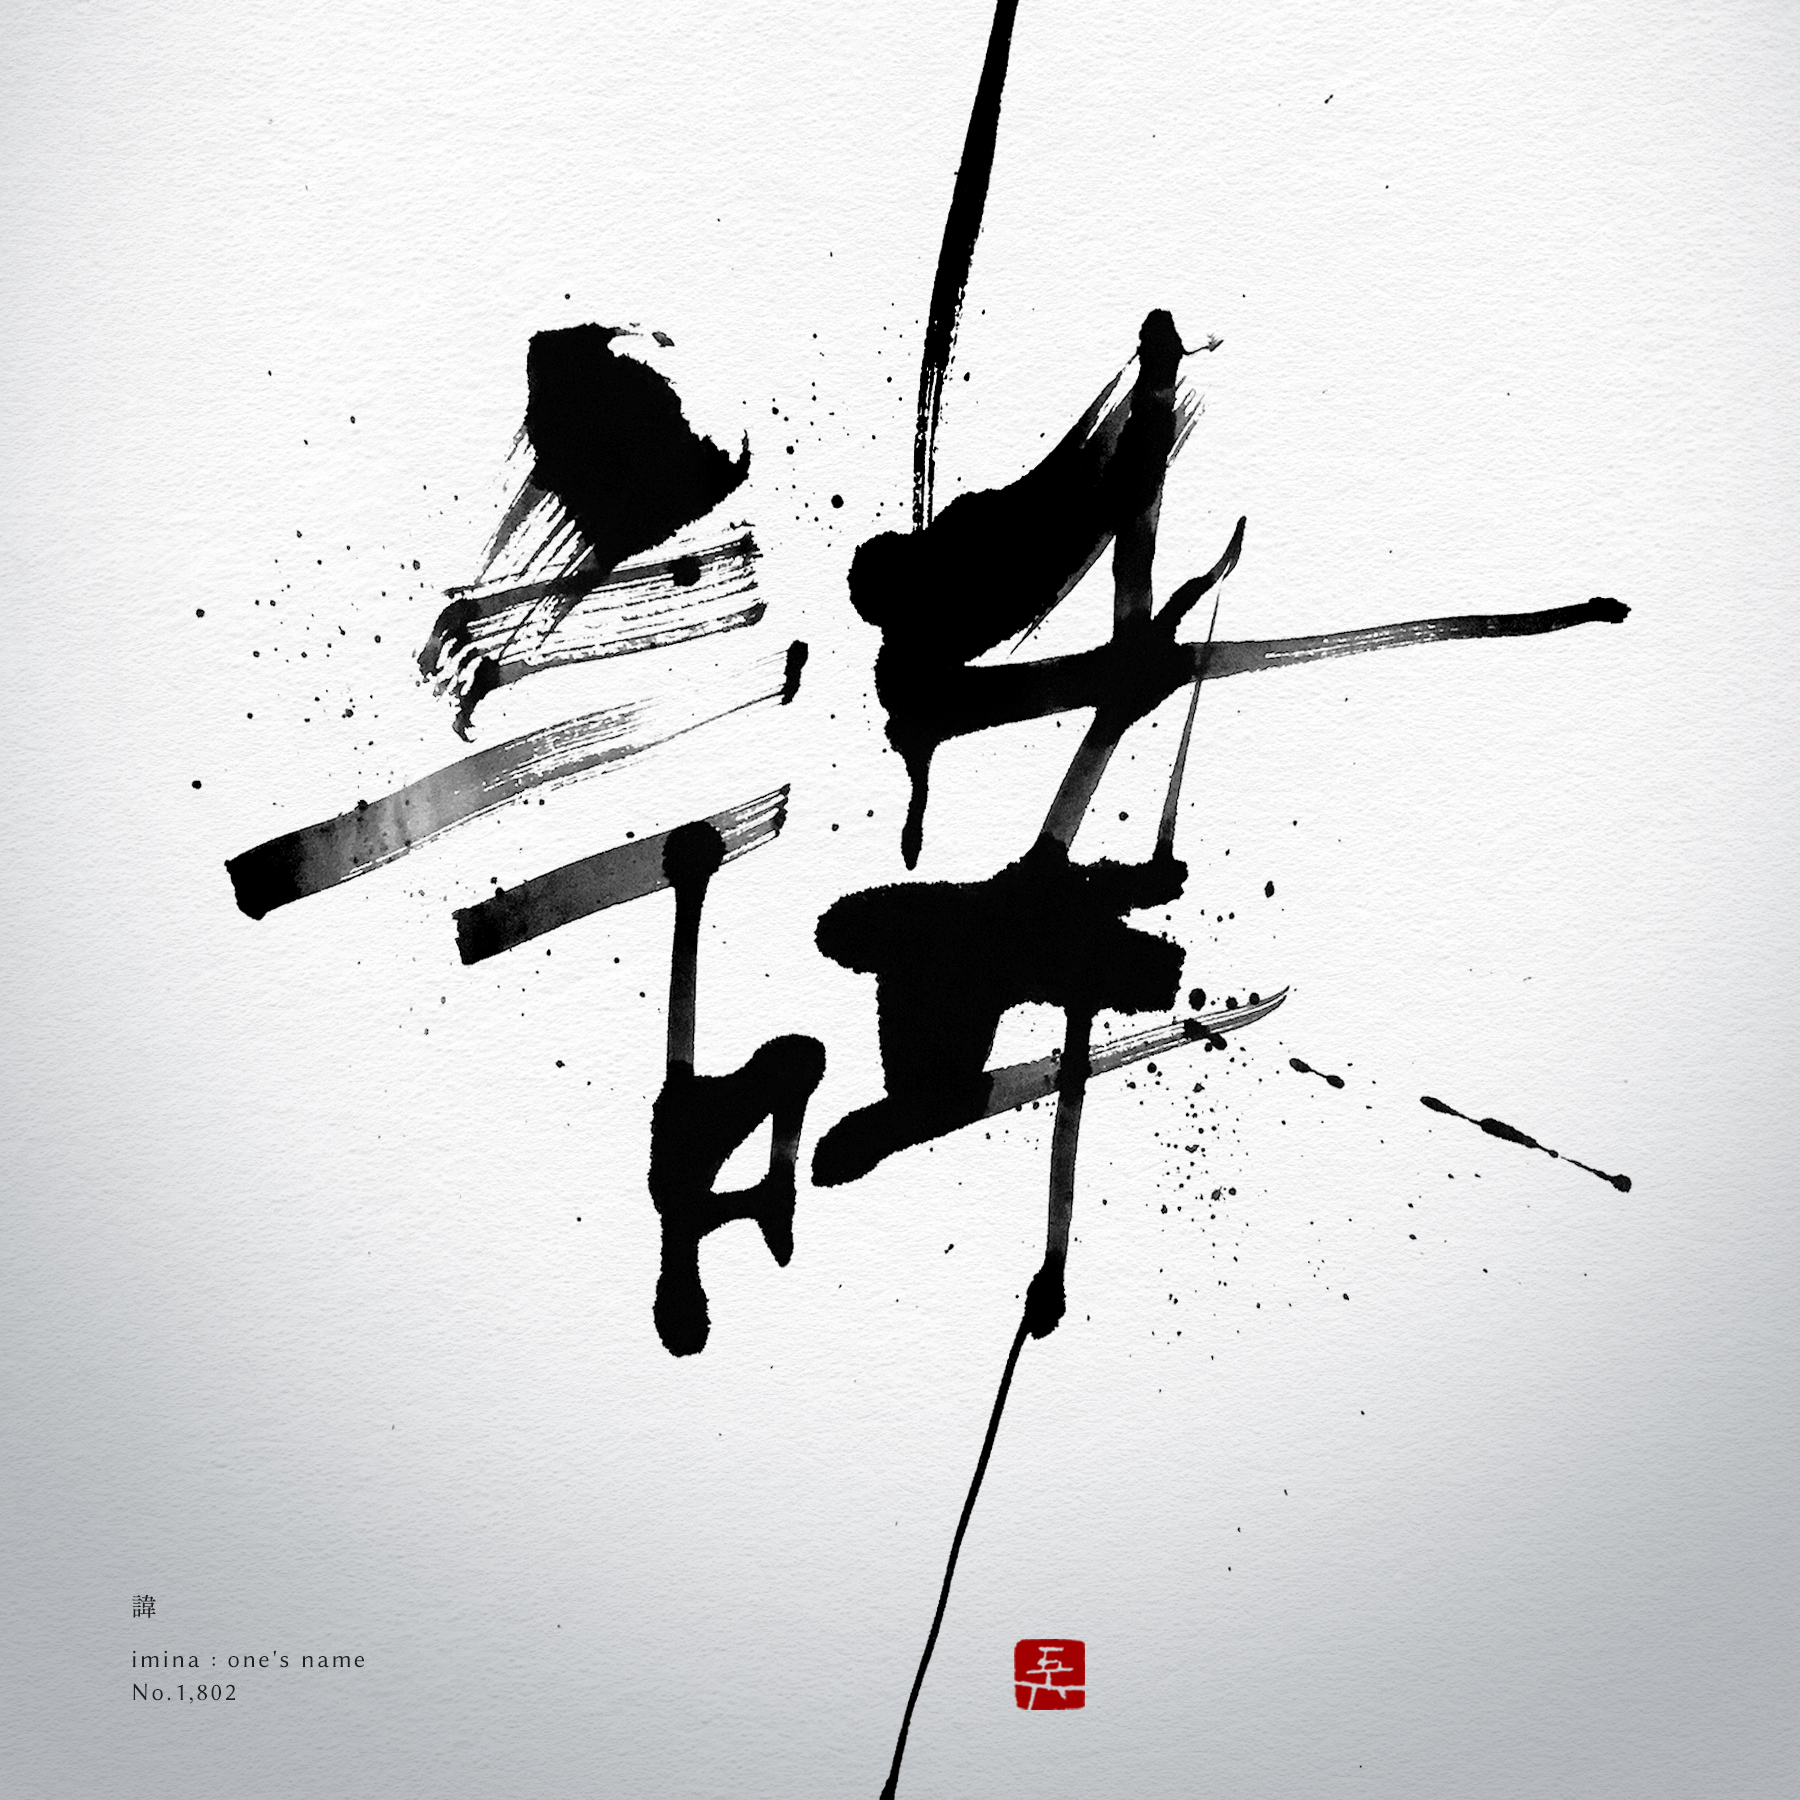 諱 | one's name 書道作品 japaneseart japanese calligraphy 書家 田川悟郎 Goroh Tagawa